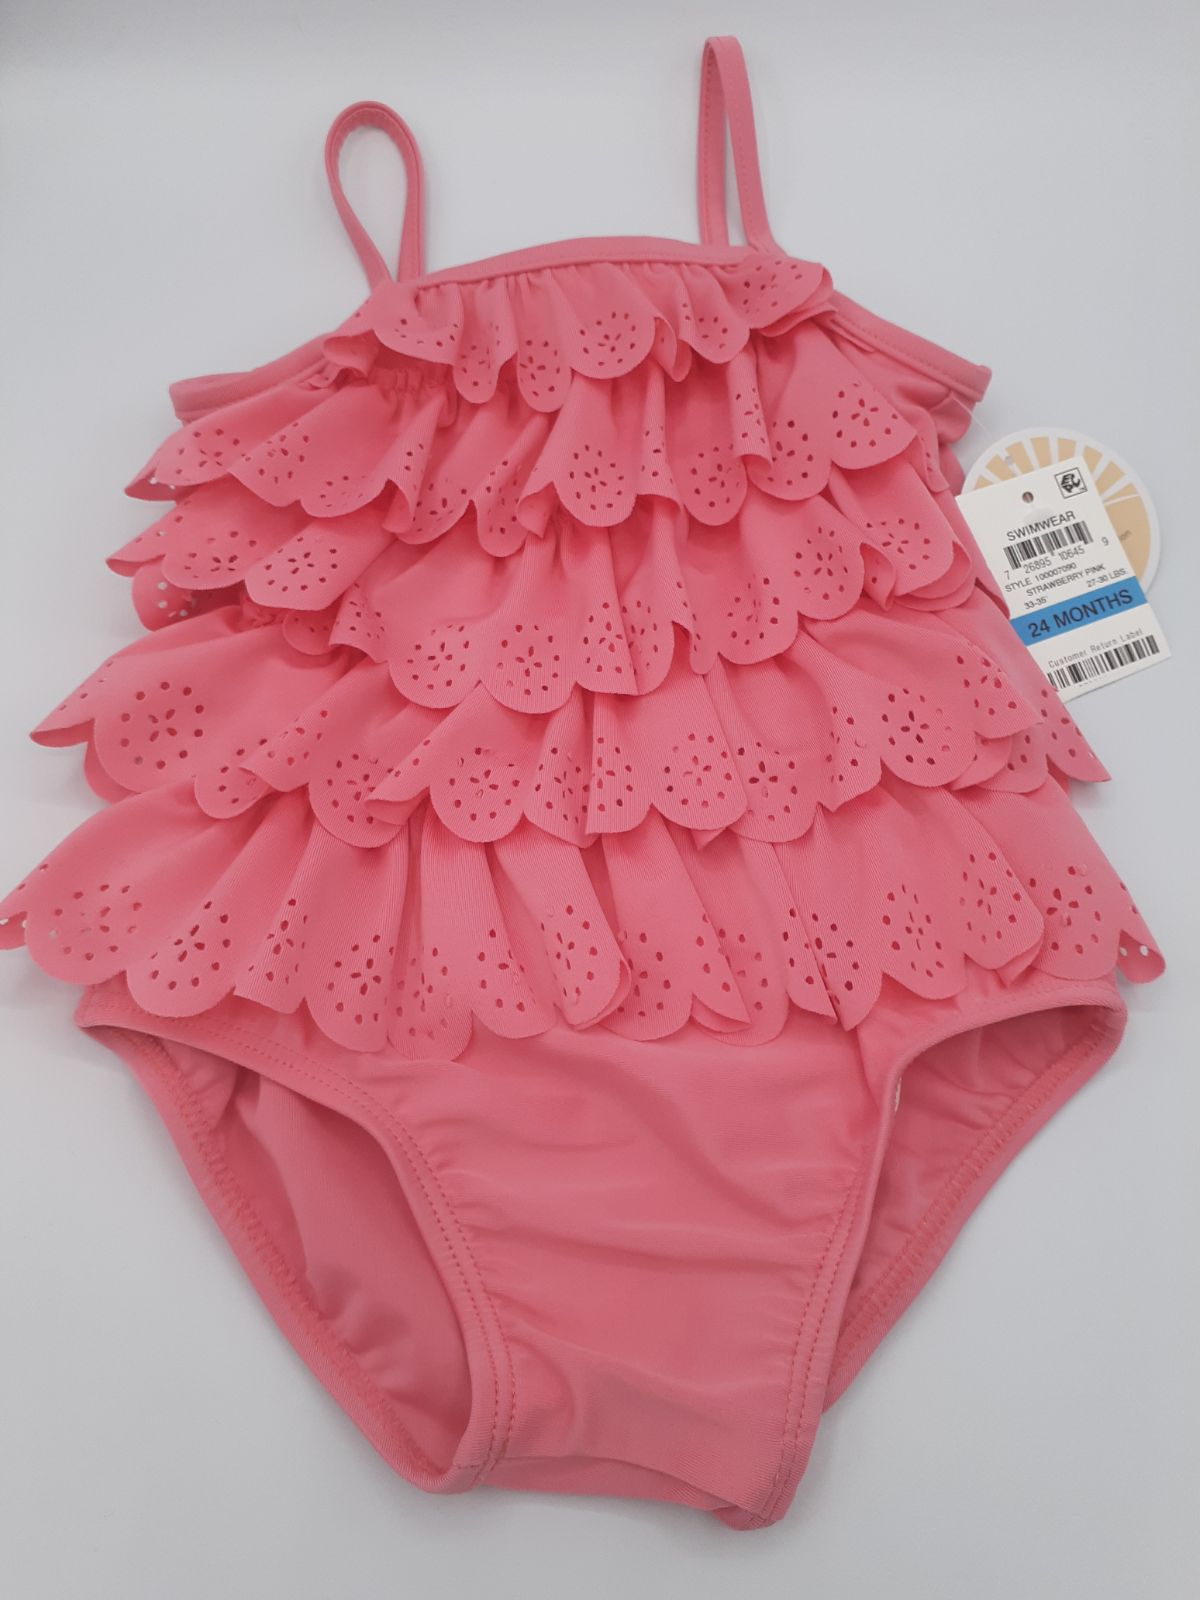 GIRLS SWIMSUIT NWT 24M FIRST IMPRESSIONS